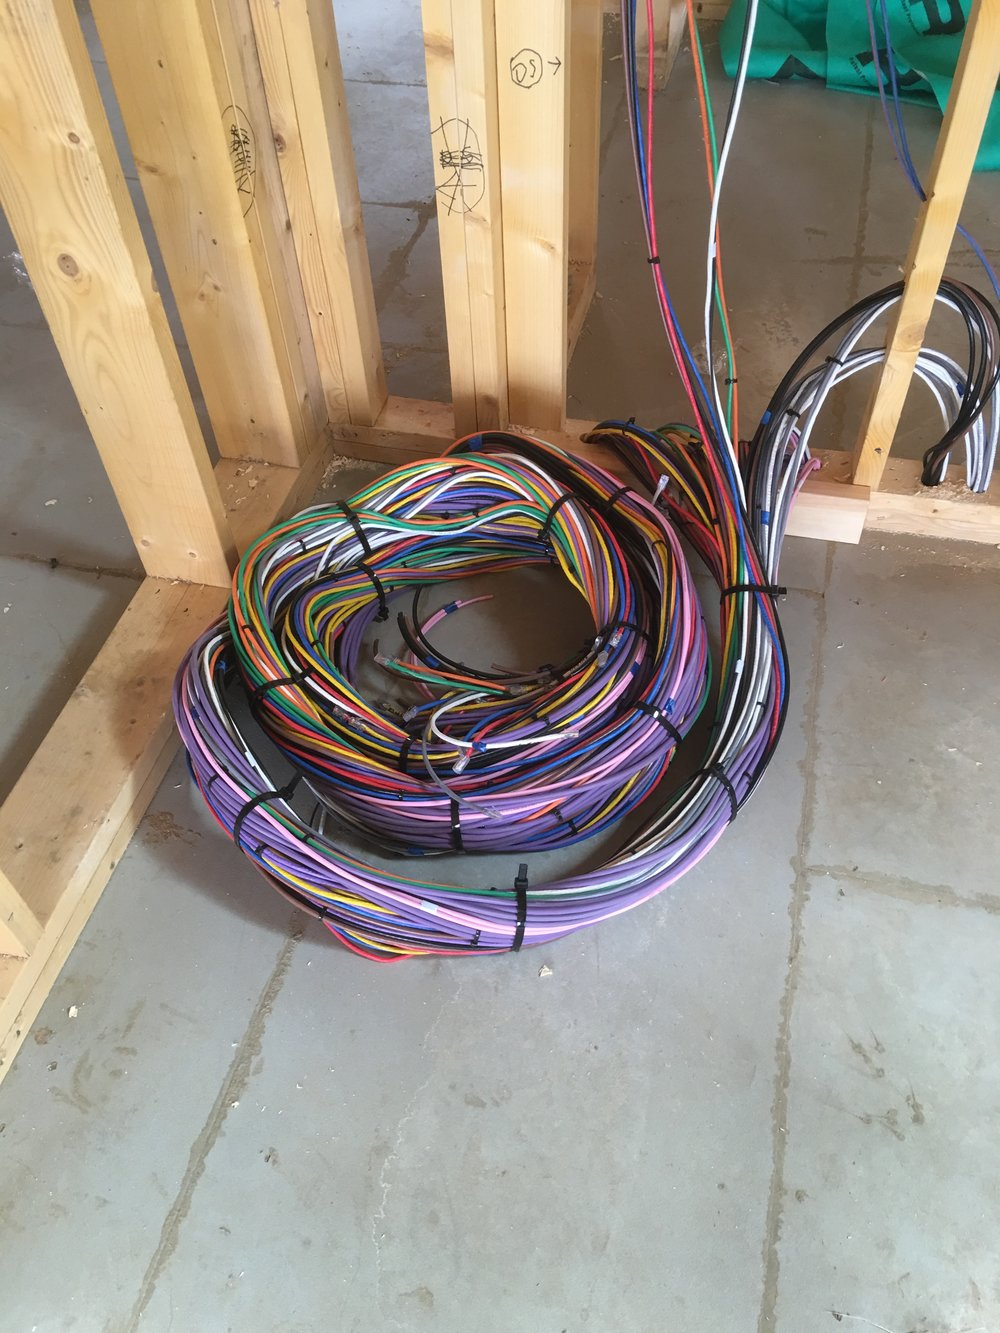 Structured Cabling Just Add Popcorn Contact Us To Learn More About Our Wiring Services Img 6774